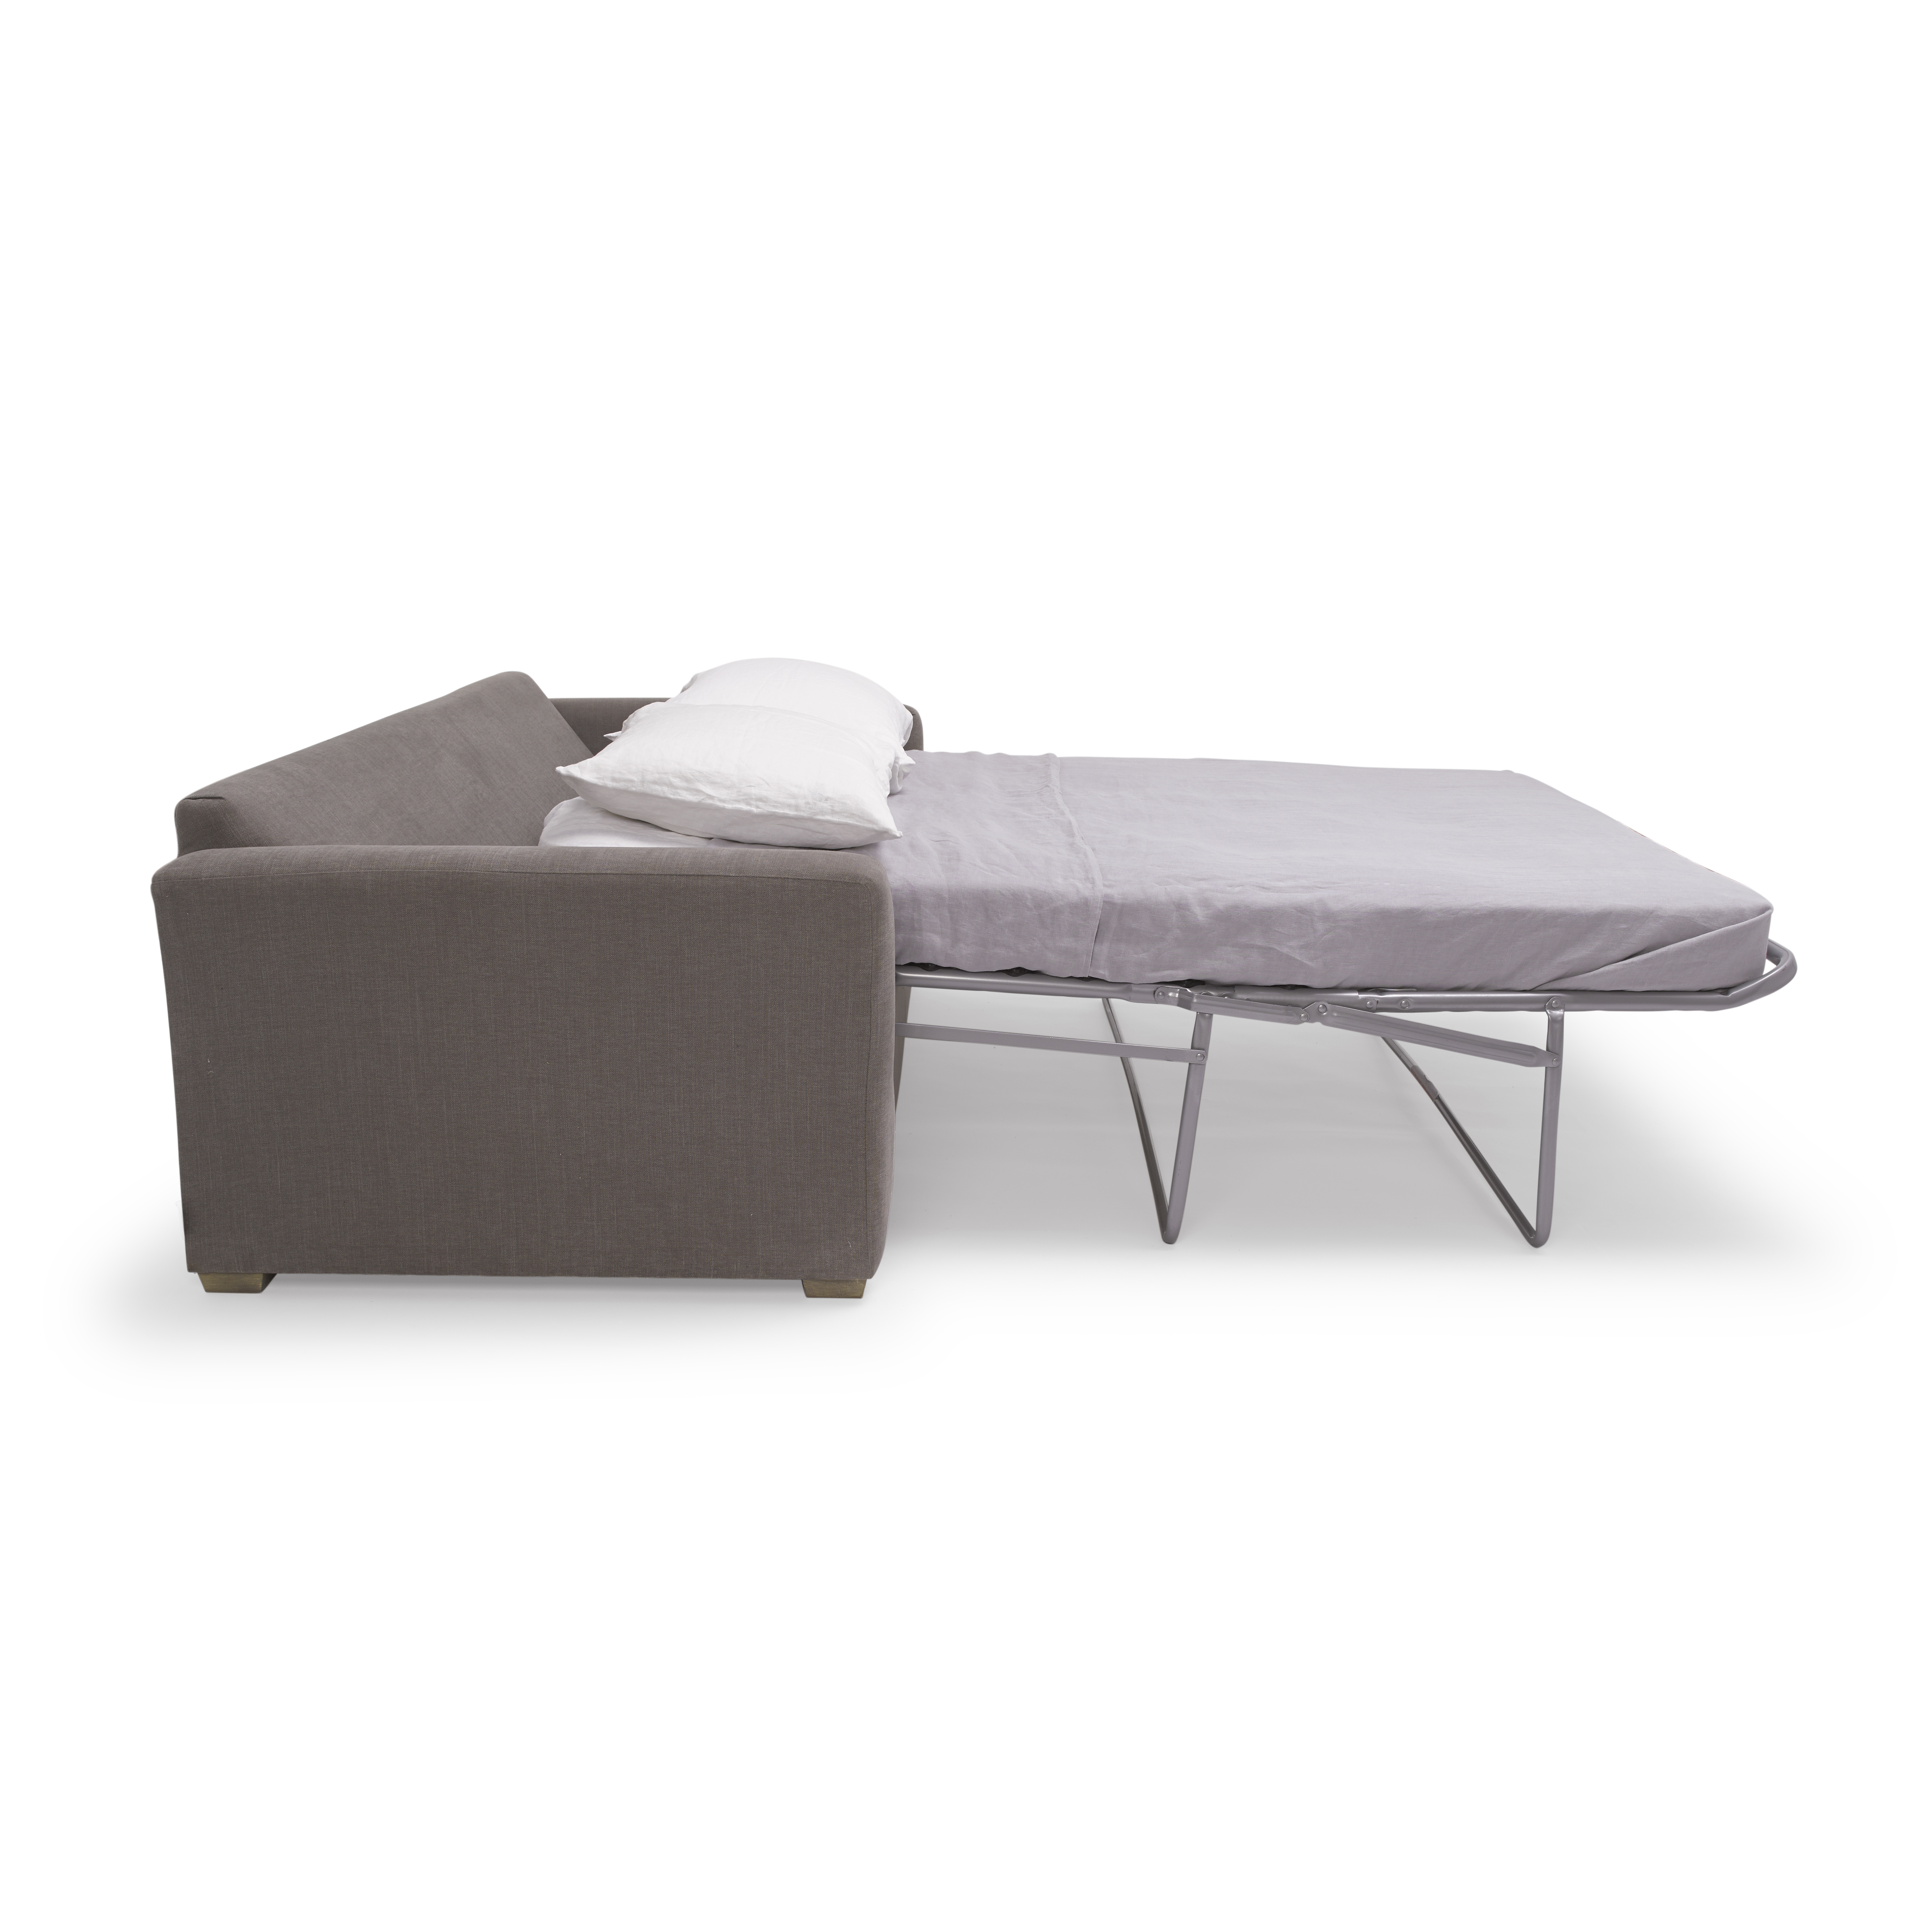 Pavilion Sofa Bed Contemporary Sofa Bed Loaf